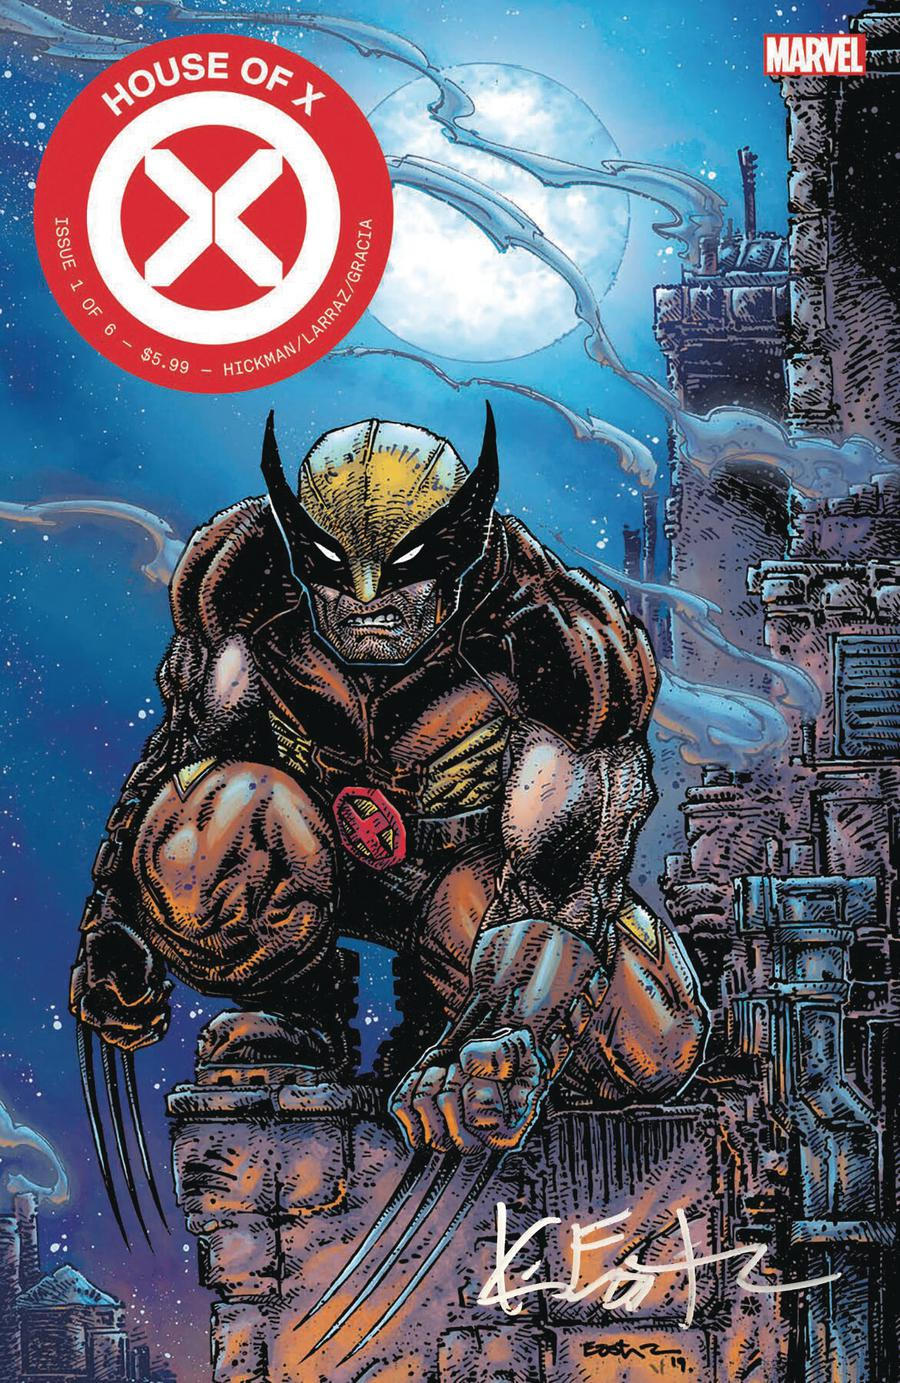 House Of X #1 Cover V Clover Press Exclusive Kevin Eastman Variant Cover Signed By Kevin Eastman